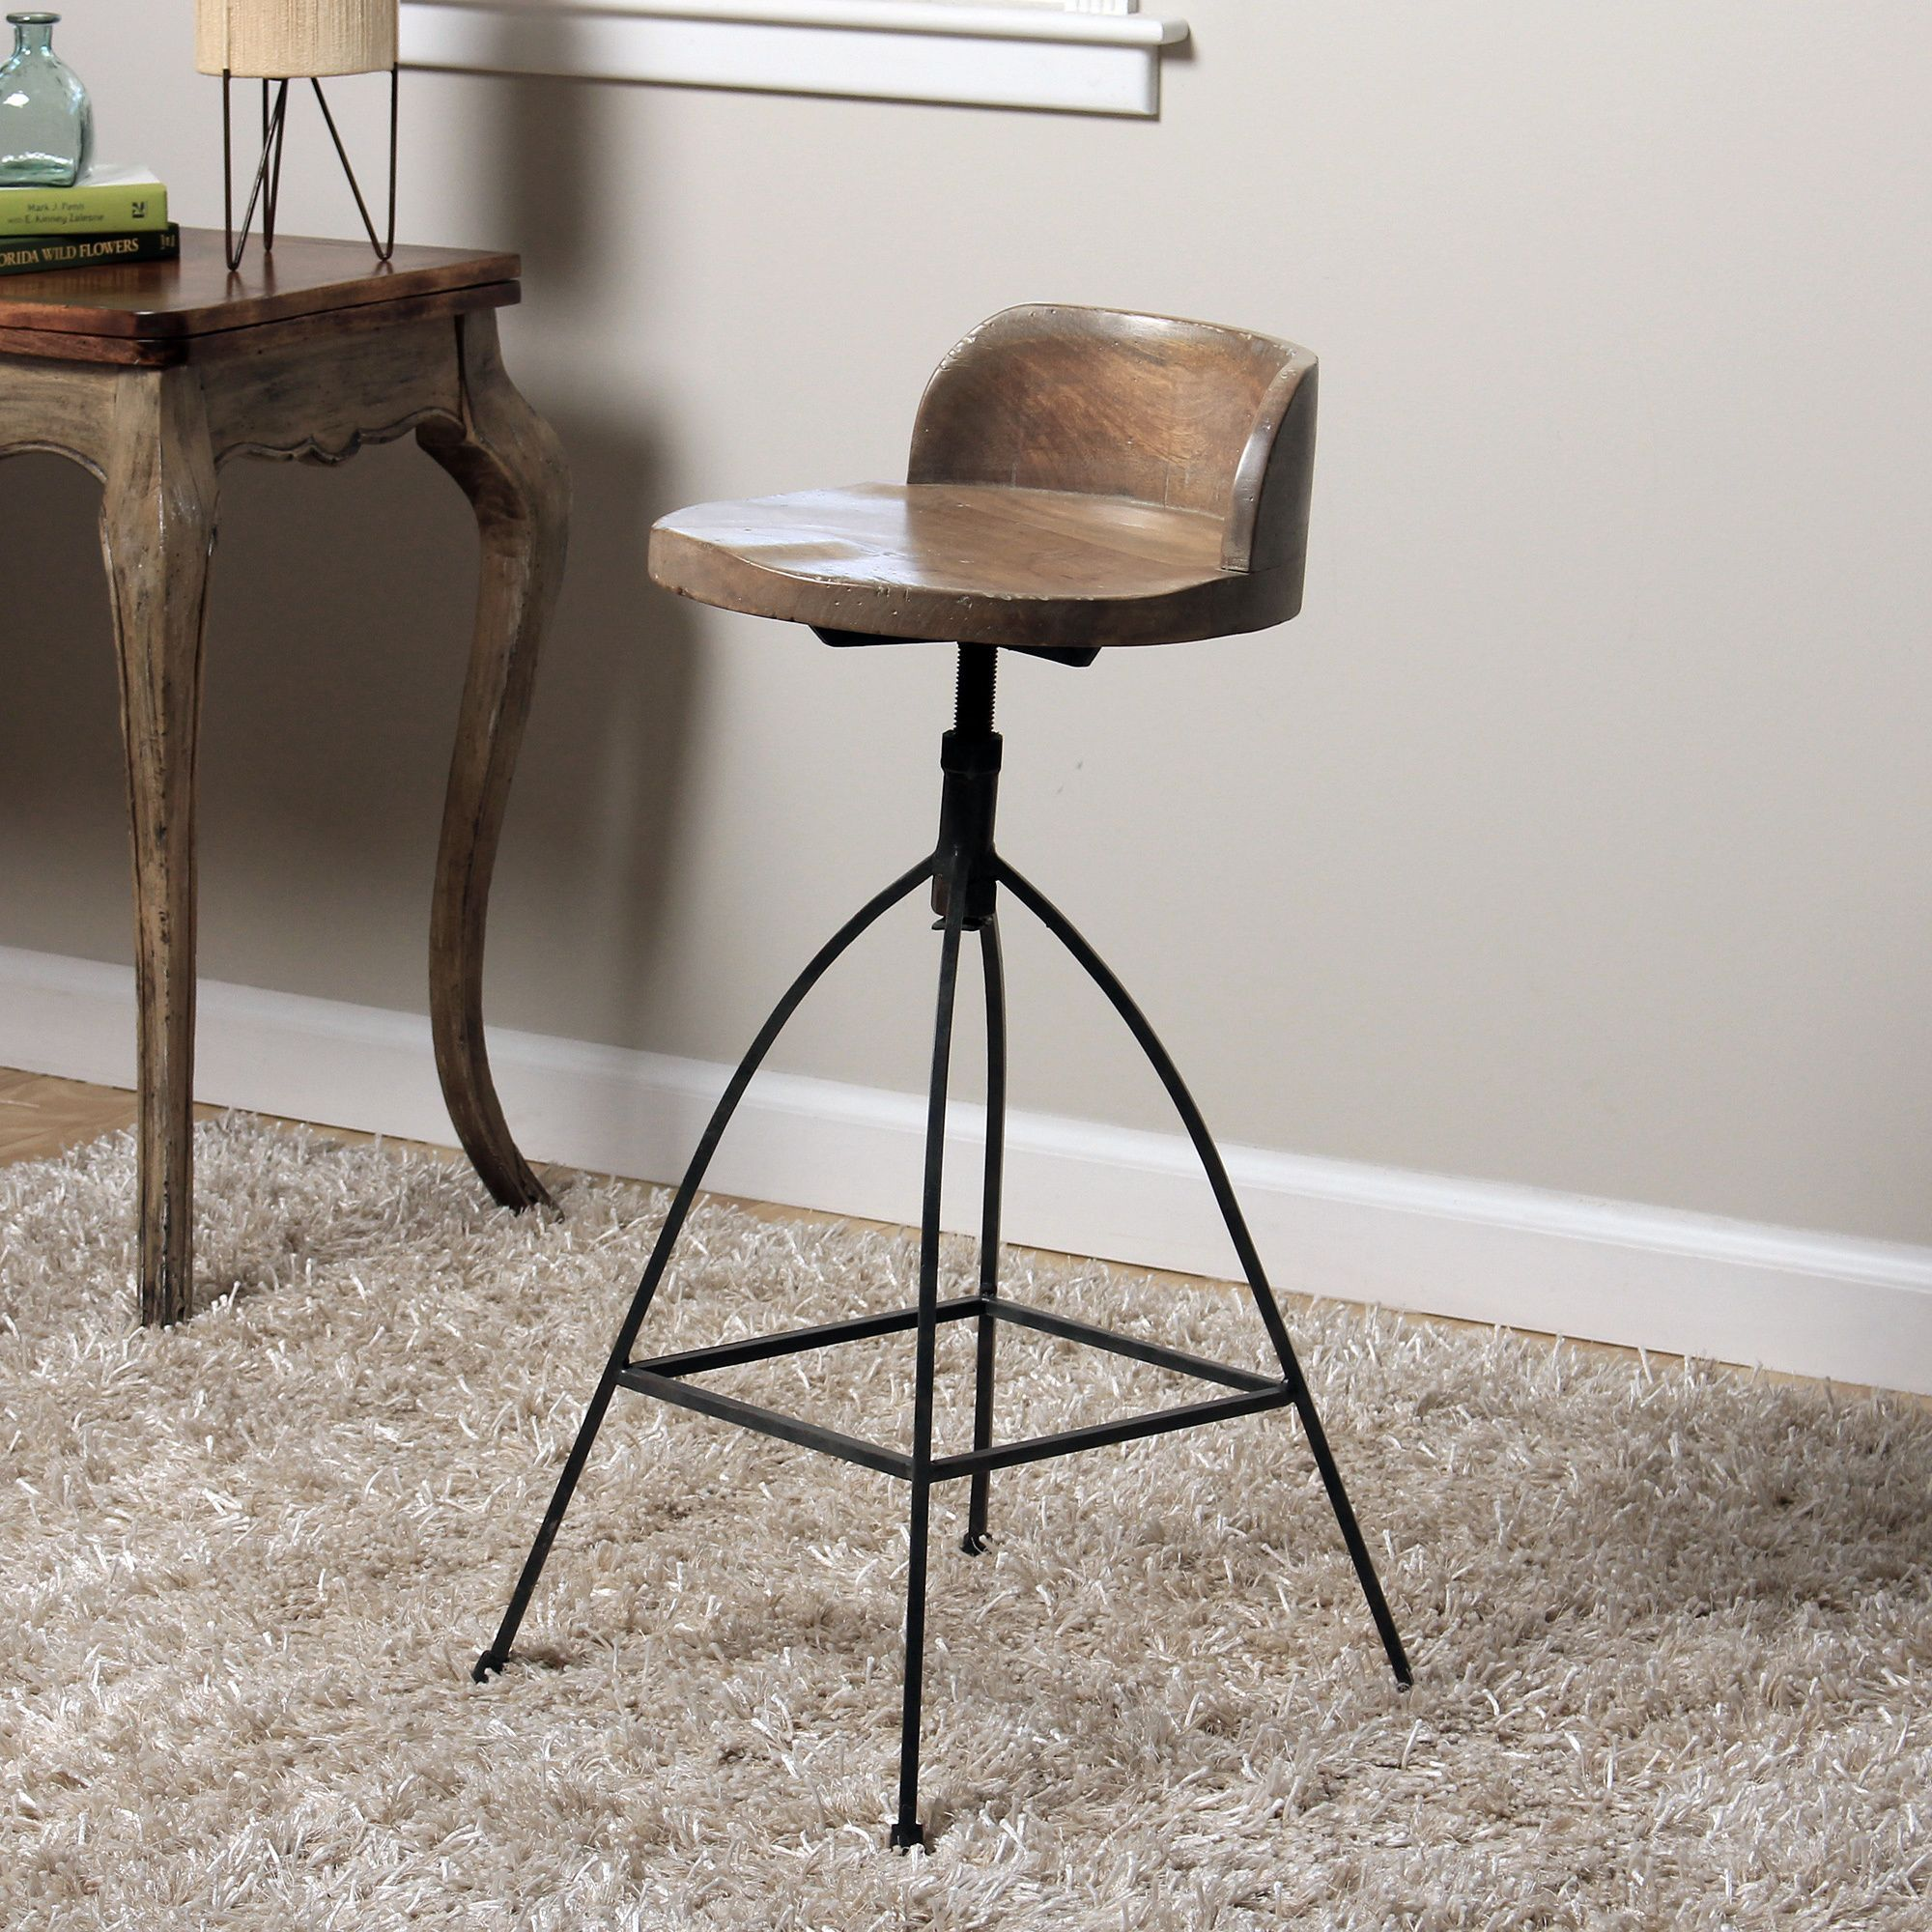 Rustic Meets Industrial In This Unique Hand Crafted Counter Stool